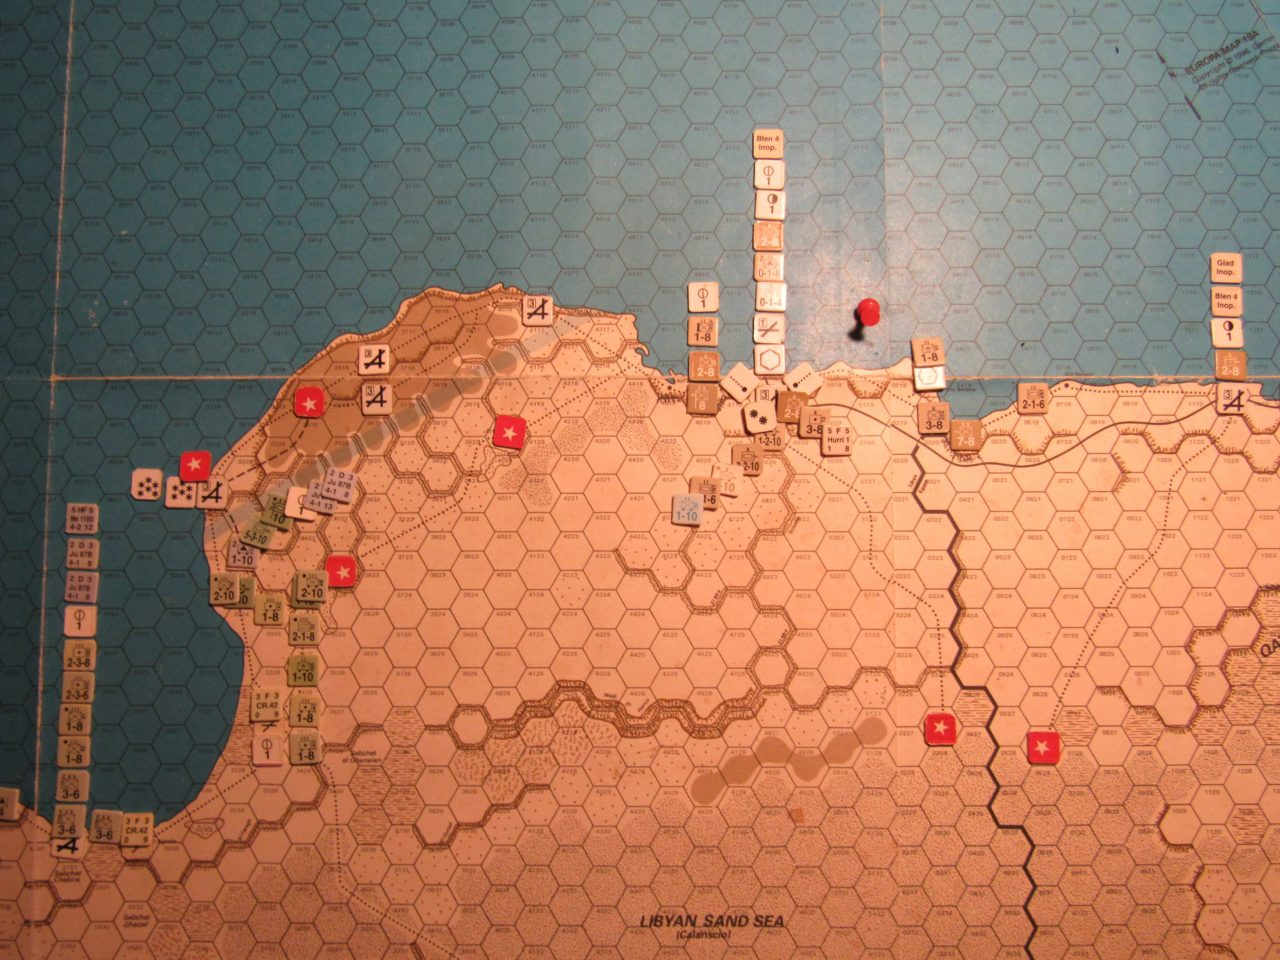 ME/ER-II Scenario: Apr I 41 Allied EOT dispositions; Eastern Libya and Western Egypt